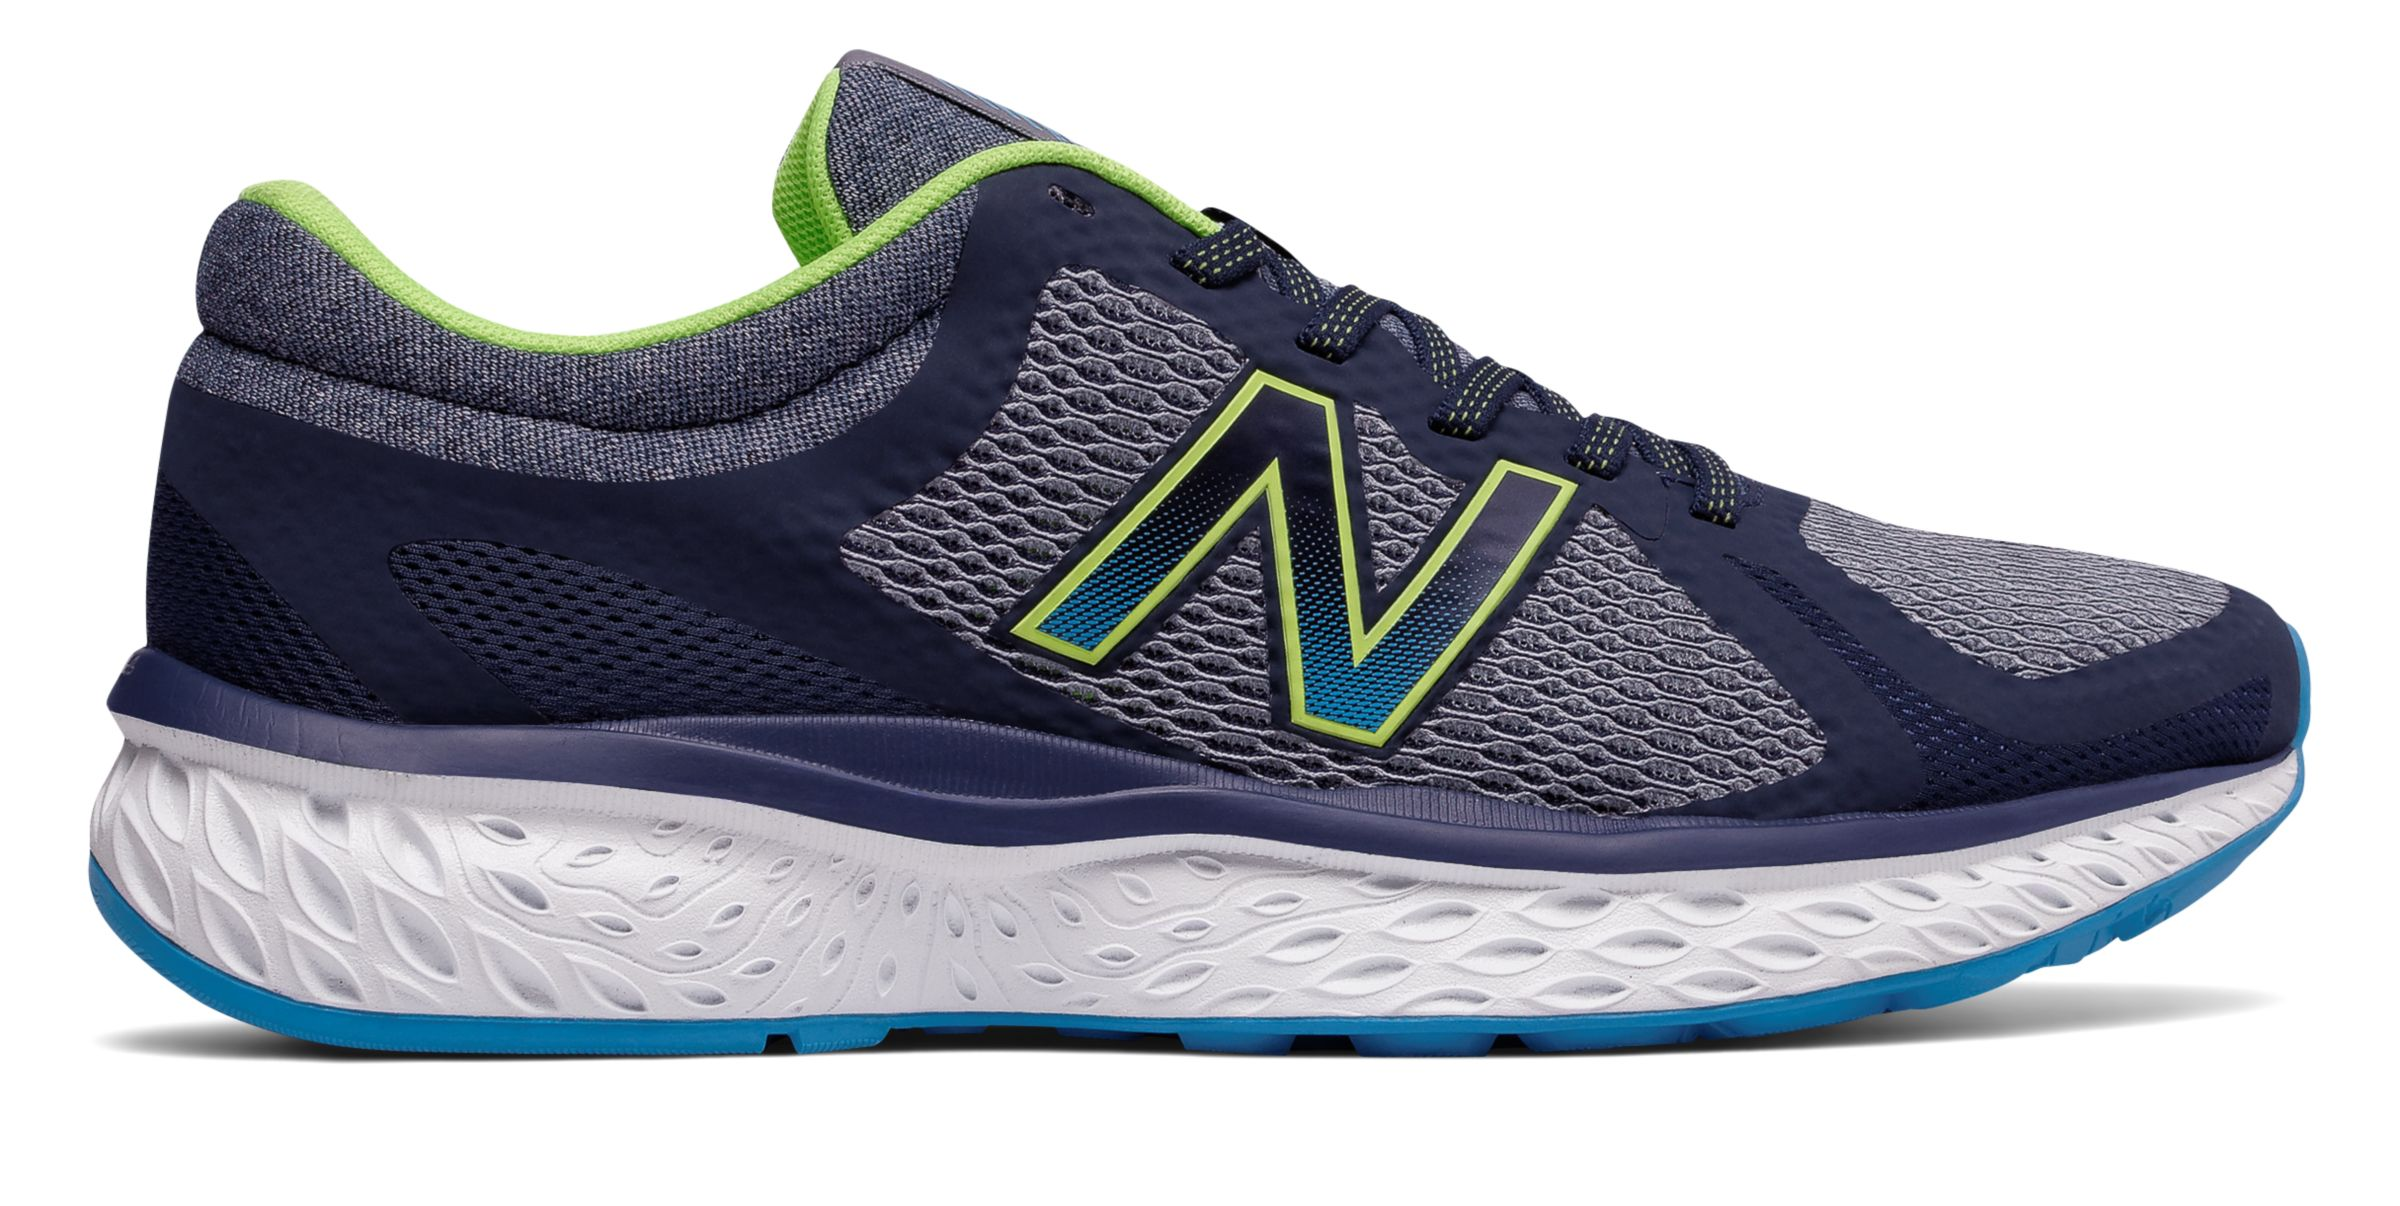 NB New Balance 720v4, Pigment with Bolt & Energy Lime